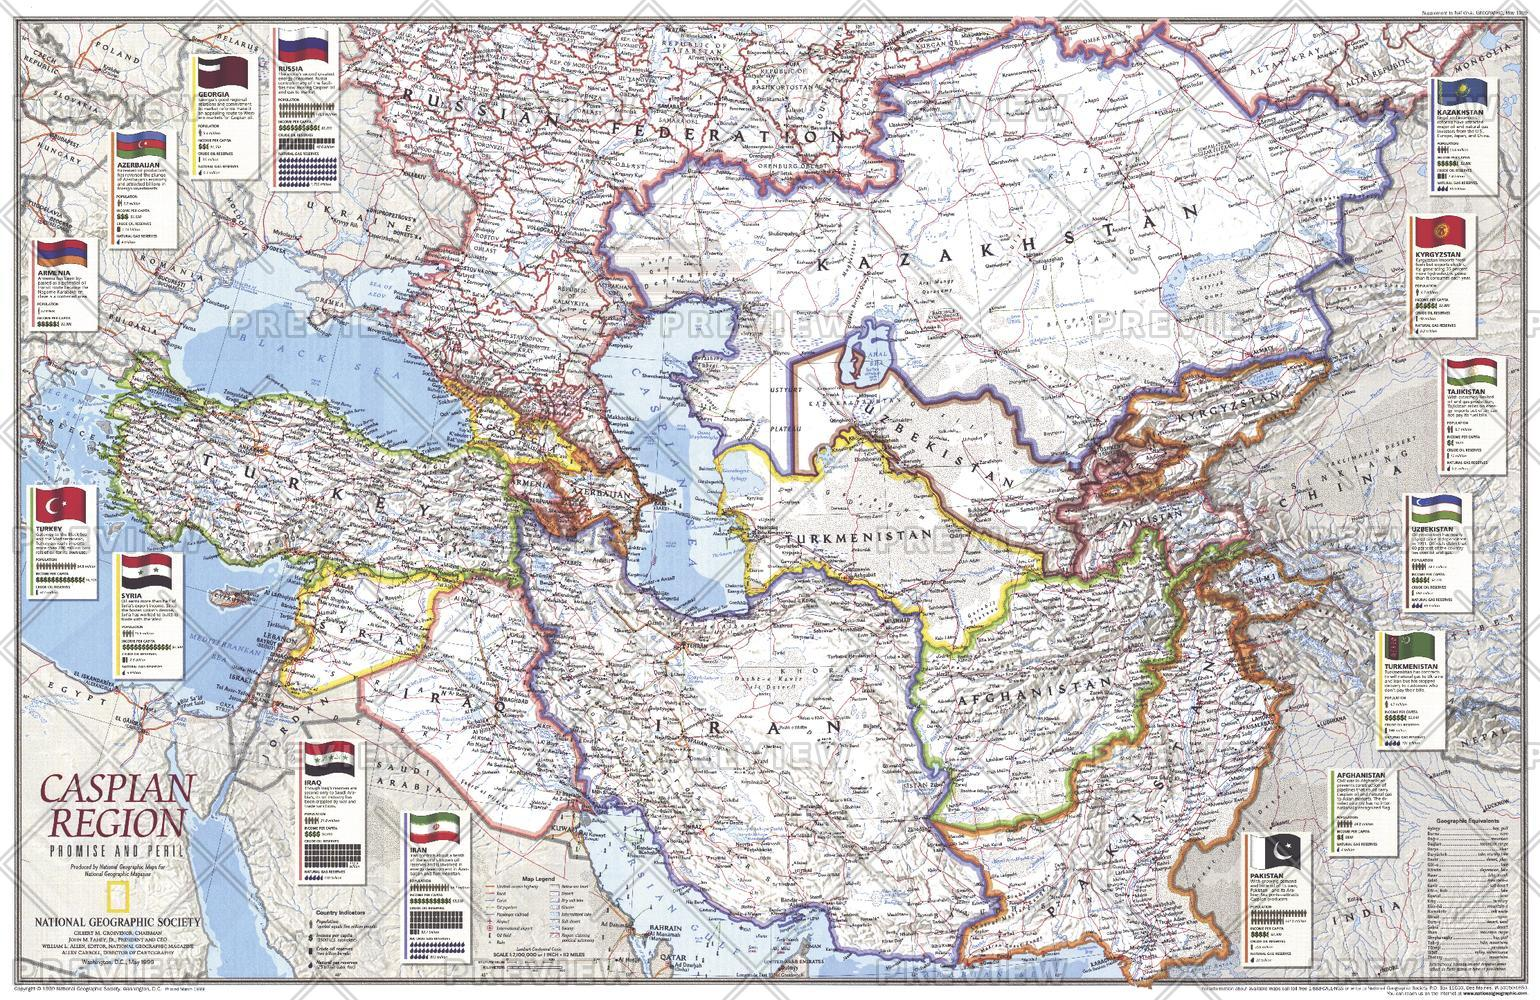 Caspian Region, Promise and Peril - Published 1999